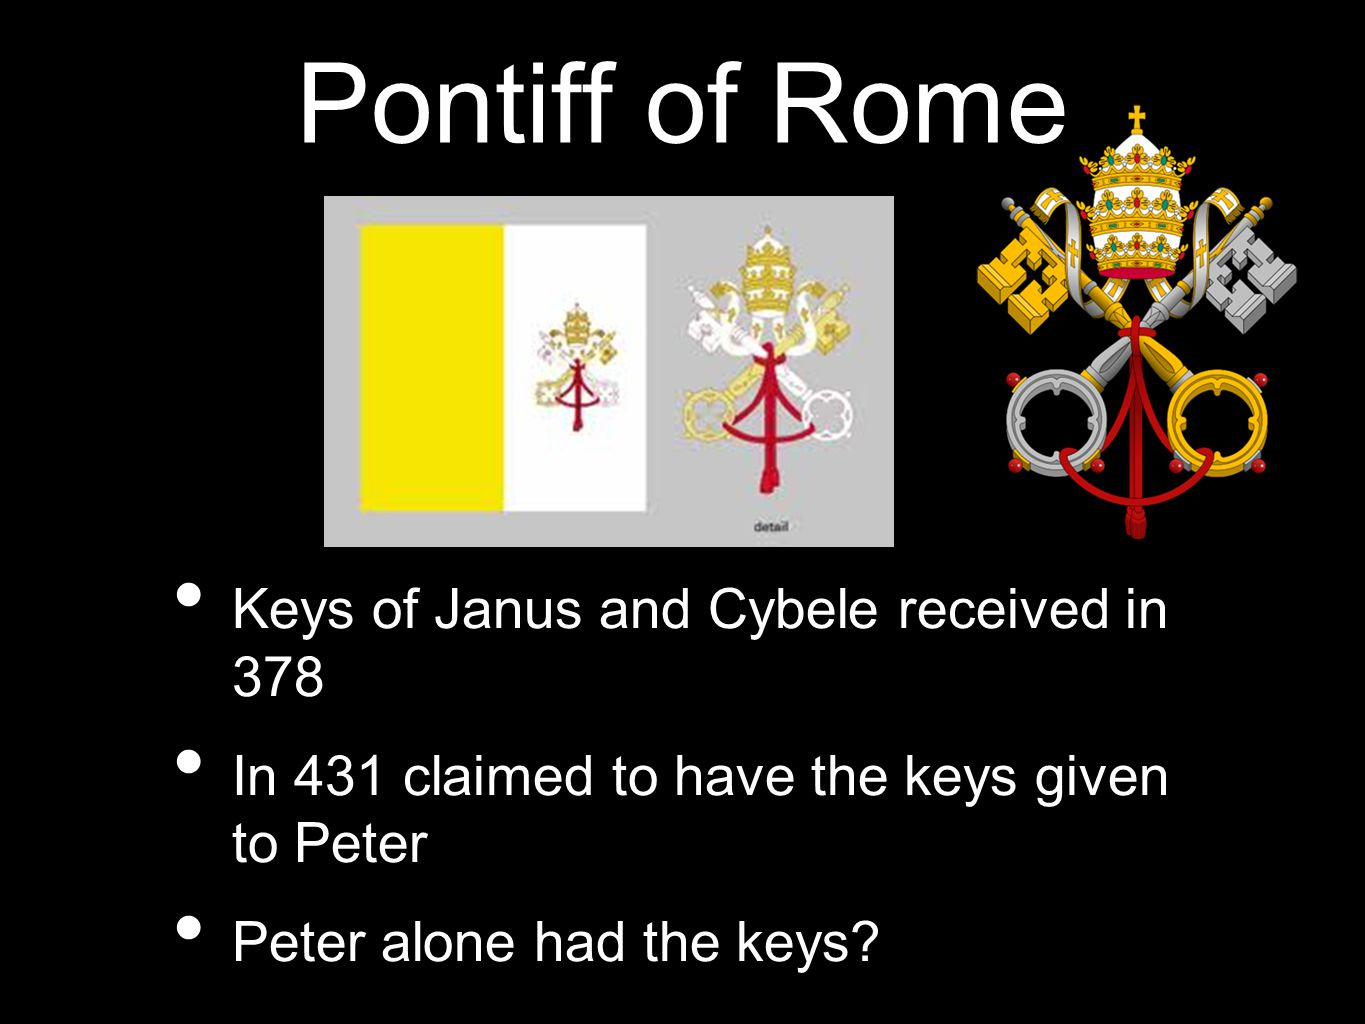 Pontiff of Rome Keys of Janus and Cybele received in 378